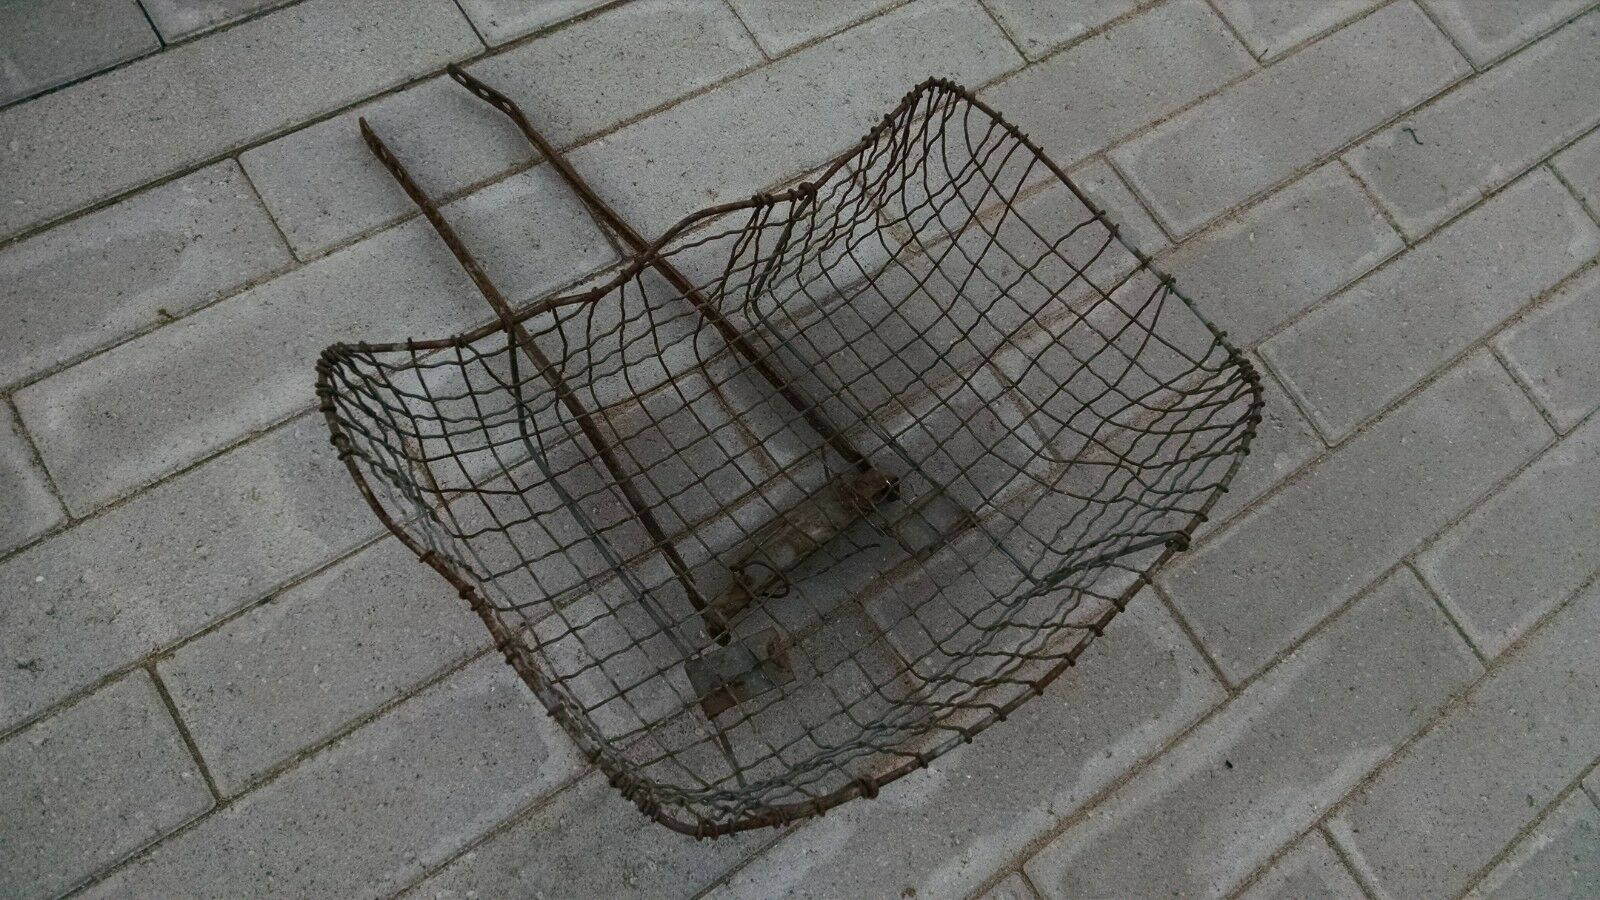 Vintage Wire Bicycle Basket Rusty Rat  Rod TOC Prewar  hot sale online